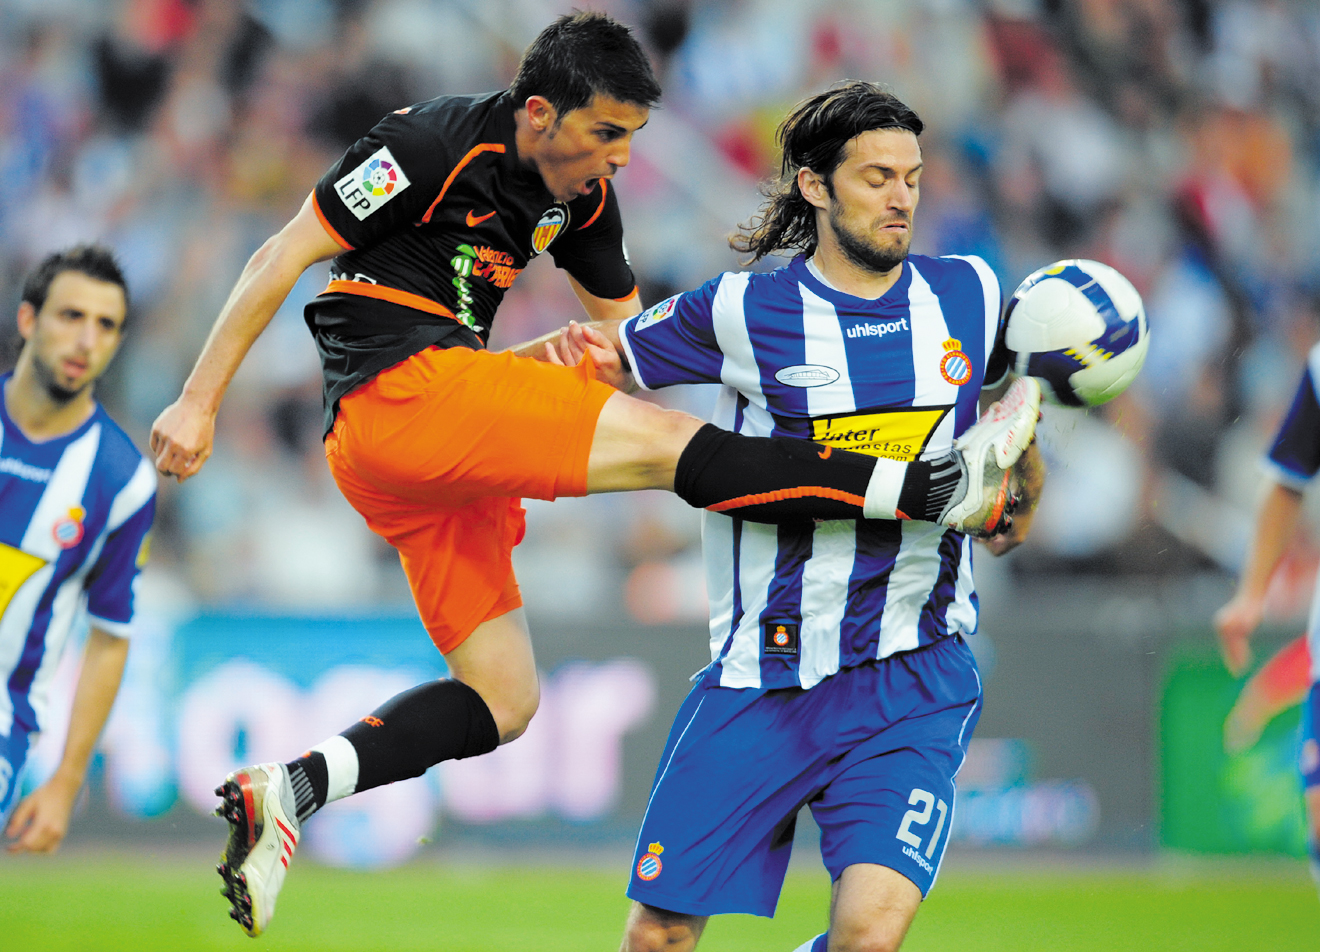 Valencia's David Villa, right, duels for the ball with Espanyol's Daniel Jarque during their Spanish La Liga soccer match at Lluis Companys Stadium in...